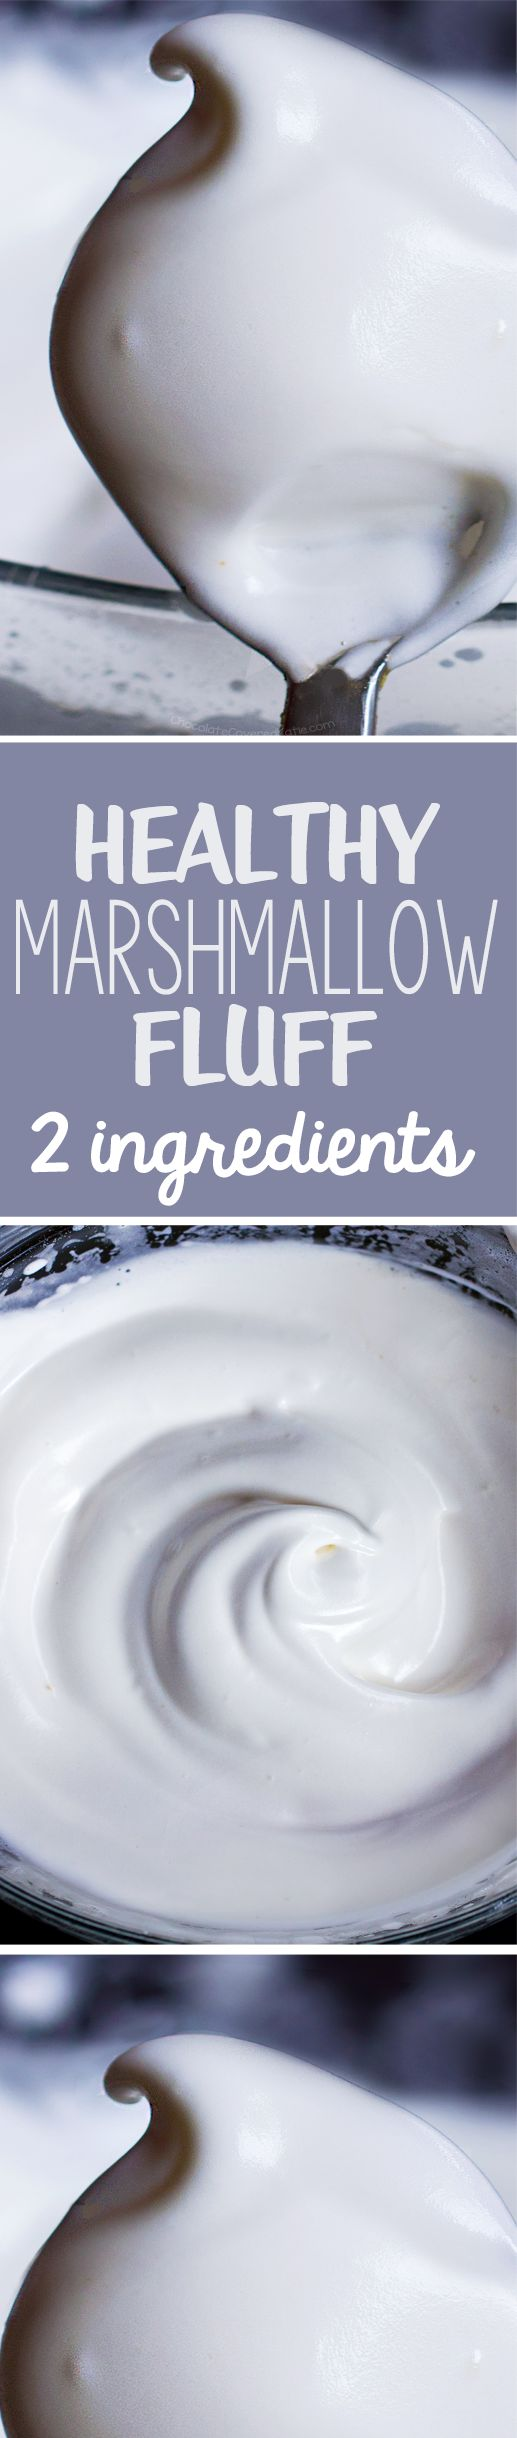 Just 5 minutes + 2 ingredients = the most amazing healthy marshmallow fluff recipe, and vegan